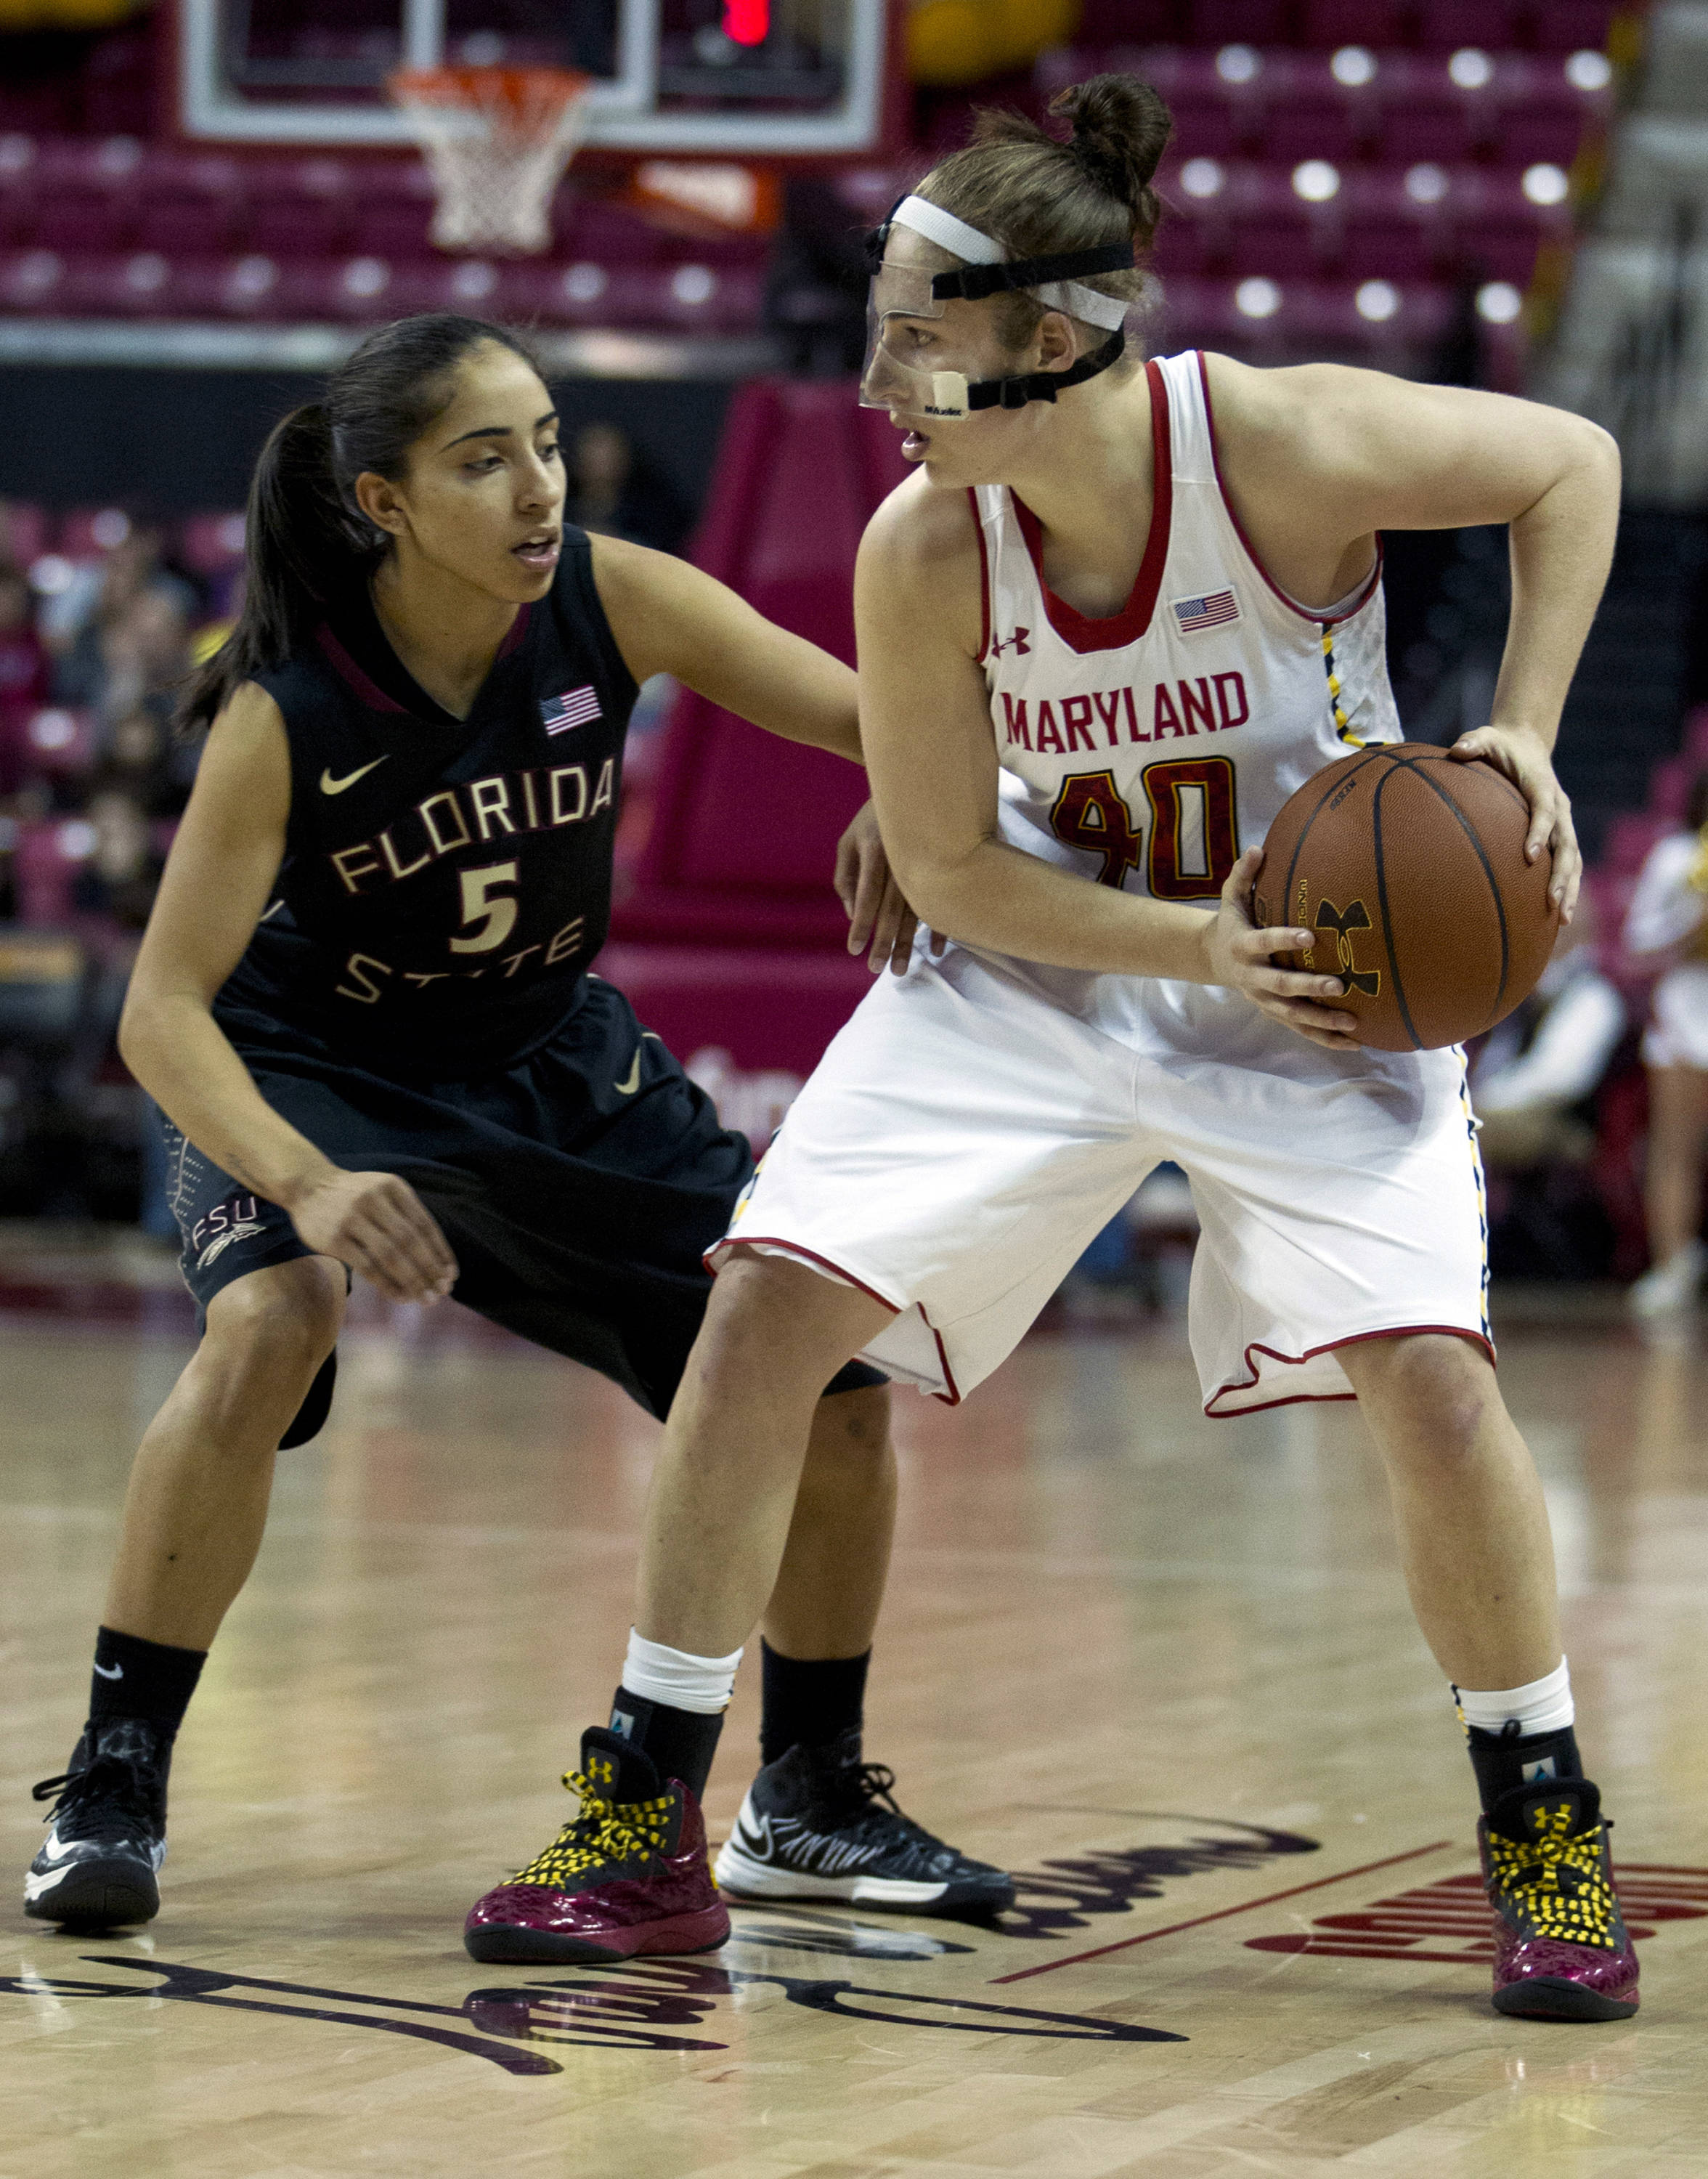 Maryland's Katie Rutan (40) moves the ball against Florida State's Yashira Delgado (5) during the second half. (AP Photo/Jose Luis Magana)